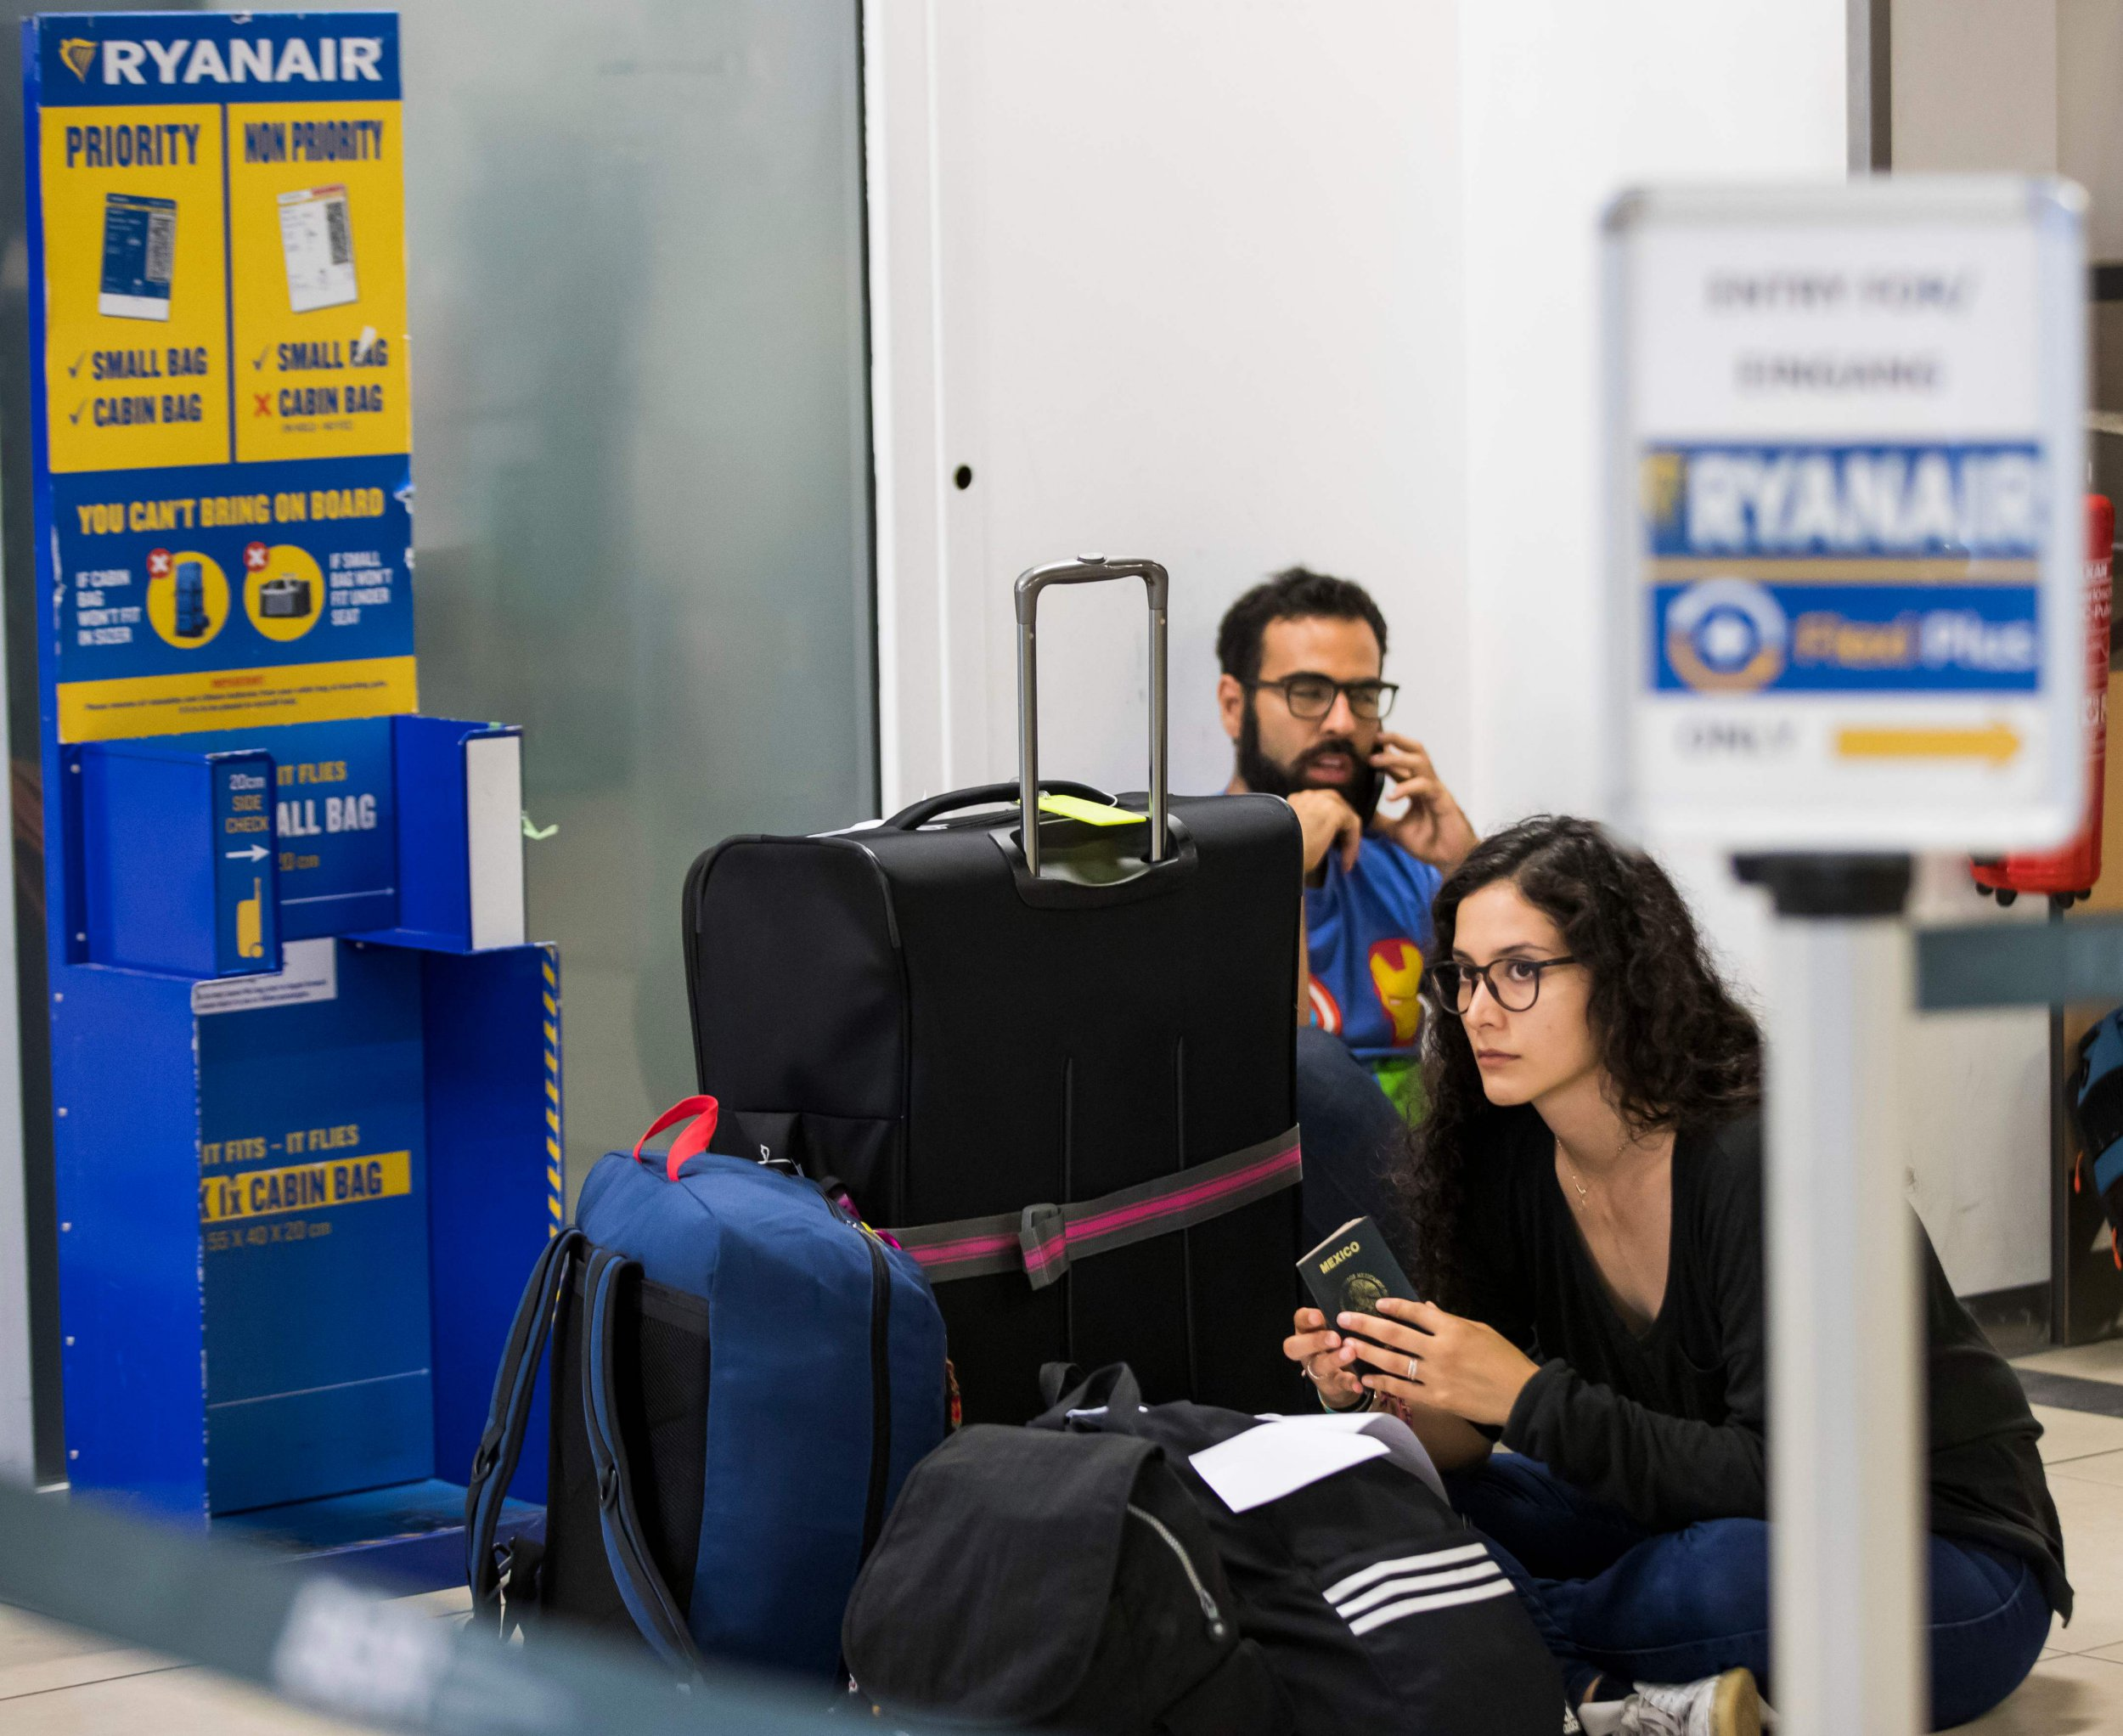 Ryanair passengers Diego Gomez (L) and Maria Vargas (C) from Mexico sit on the terminal floor at Schoenefeld Airport in Berlin on August 10, 2018, after their Ryanair flight was cancelled because of a pilots strike. - Ryanair pilots are staging a 24-hour walk-out involving staff in Germany, Sweden, Ireland, Belgium and the Netherlands. About 50,000 passengers are understood to have been told of cancellations on 400 flights, 250 of those in Germany due to the strike action. (Photo by Odd ANDERSEN / AFP)ODD ANDERSEN/AFP/Getty Images